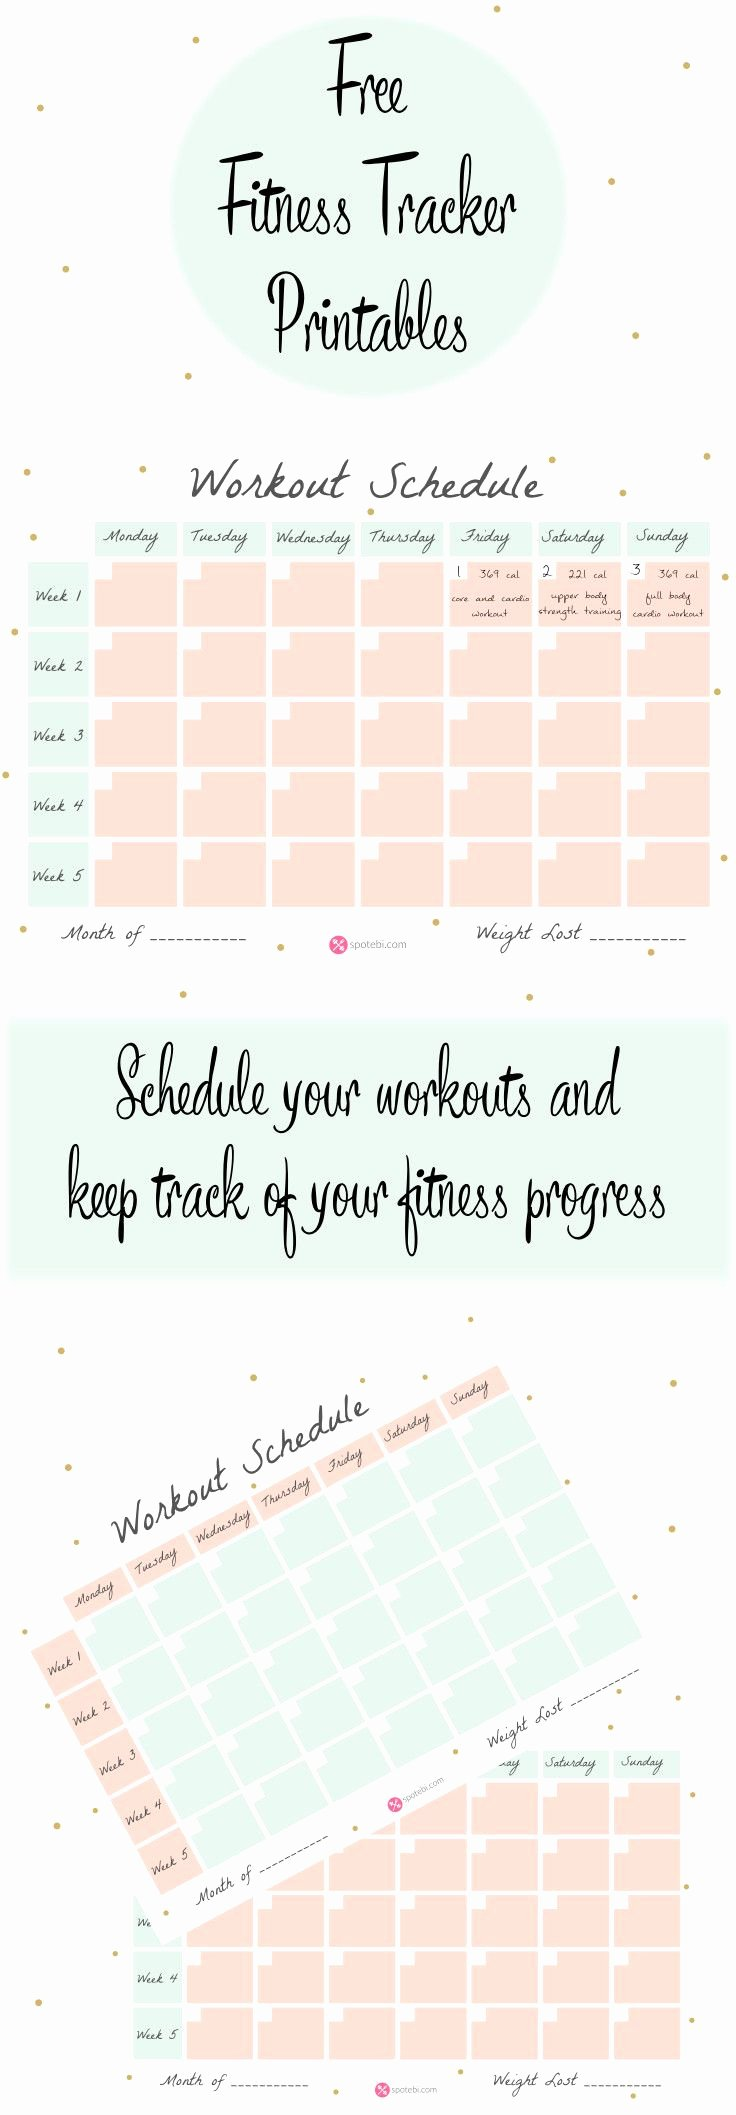 Work Out Schedule Template Awesome Workout Schedule Template